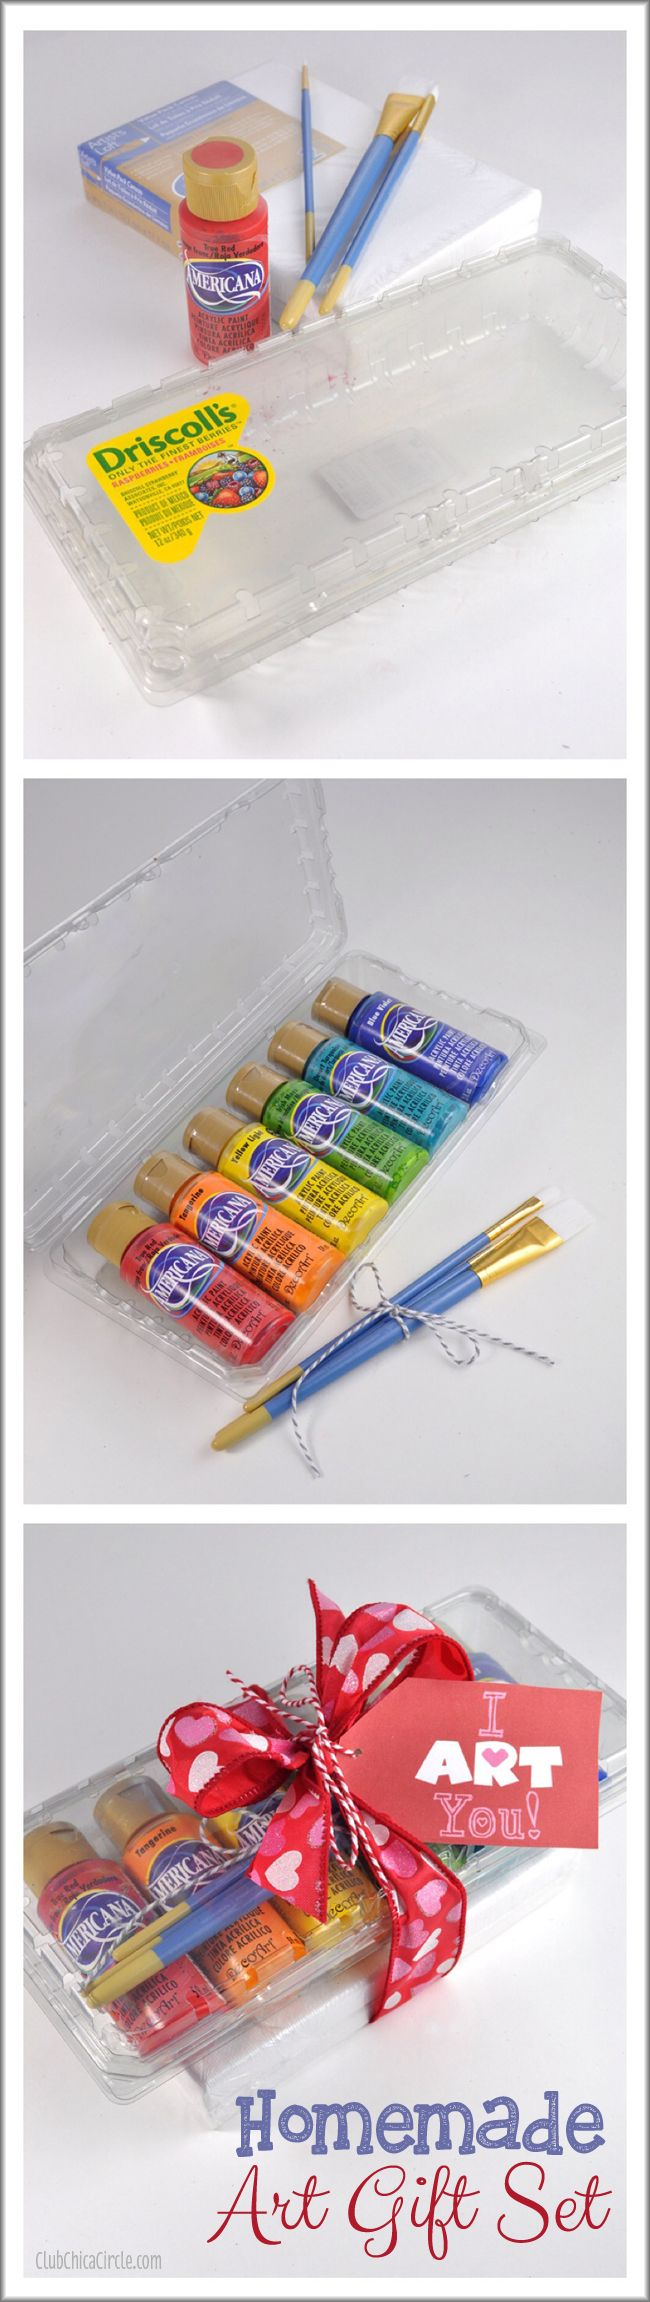 Make your own homemade art gift set for tweens